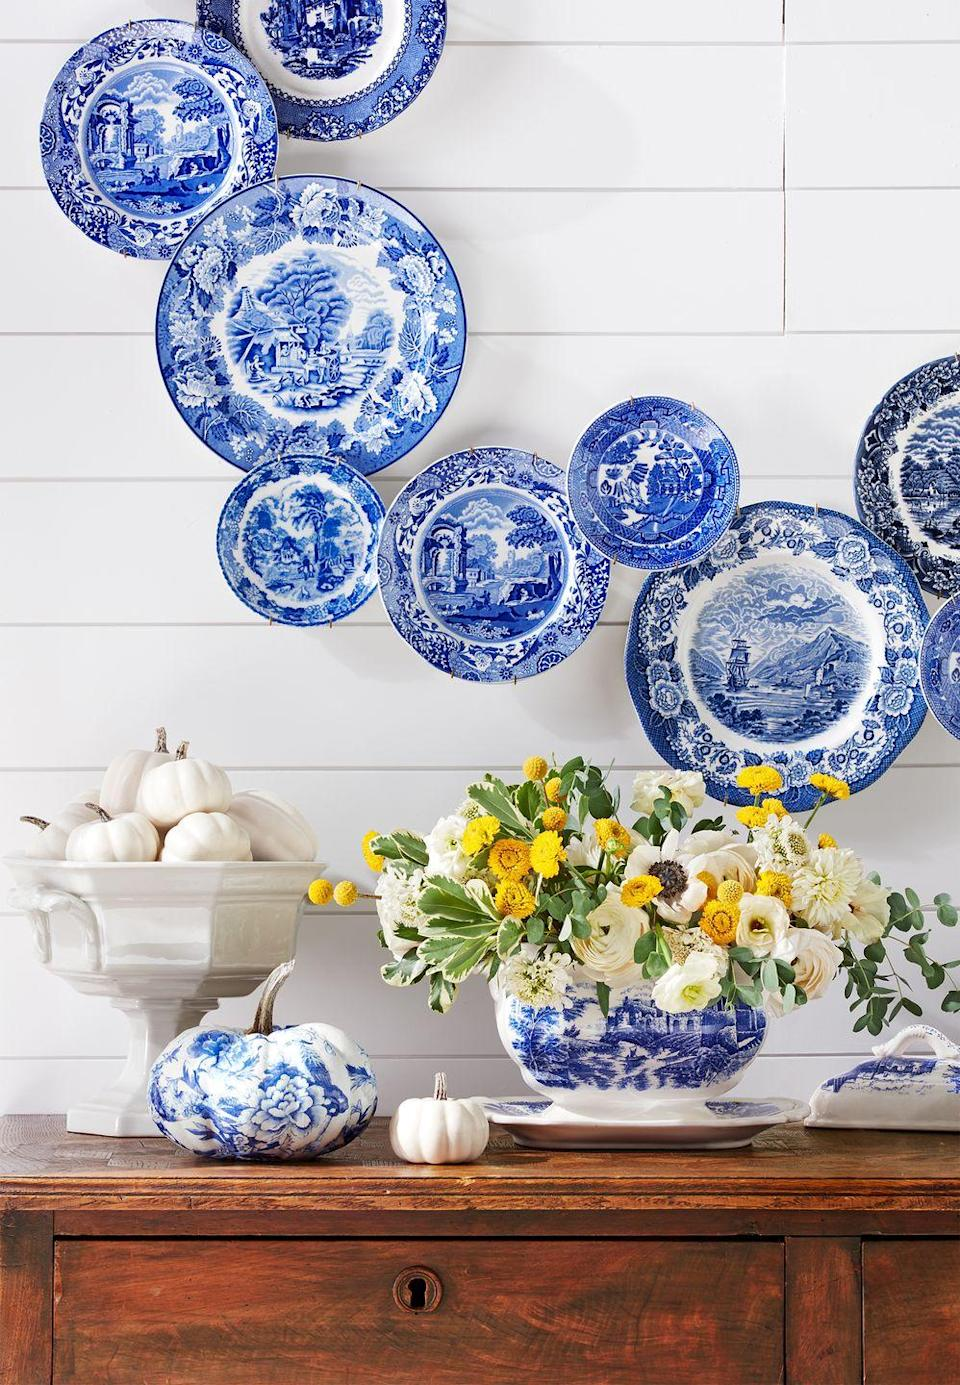 """<p>Any design buff would appreciate this chinoiserie pumpkin design. Amp up the look by surrounding it with dishware of the same style. </p><p><a class=""""link rapid-noclick-resp"""" href=""""https://www.amazon.com/Martha-Stewart-17636-Layering-Chinoiserie/dp/B07FMGZP1X?tag=syn-yahoo-20&ascsubtag=%5Bartid%7C10055.g.2592%5Bsrc%7Cyahoo-us"""" rel=""""nofollow noopener"""" target=""""_blank"""" data-ylk=""""slk:SHOP STENCIL"""">SHOP STENCIL</a></p>"""